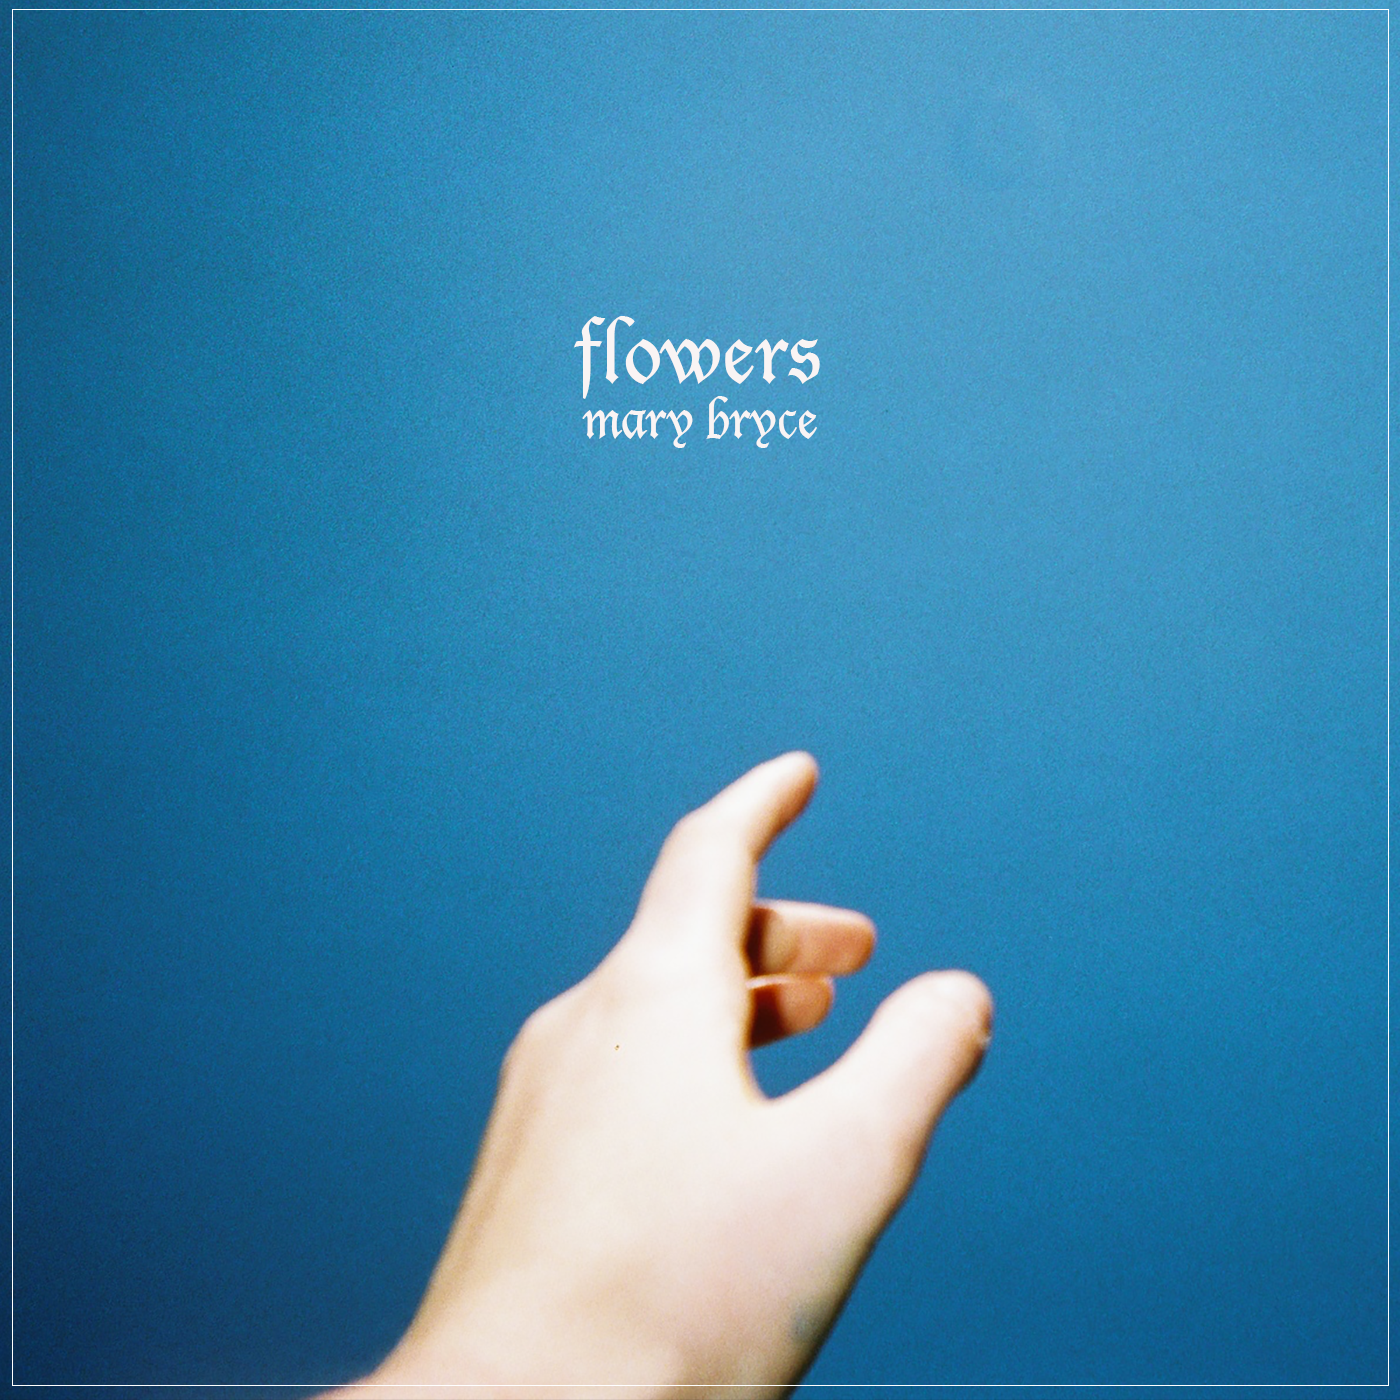 flowers art idea bandcamp version.png